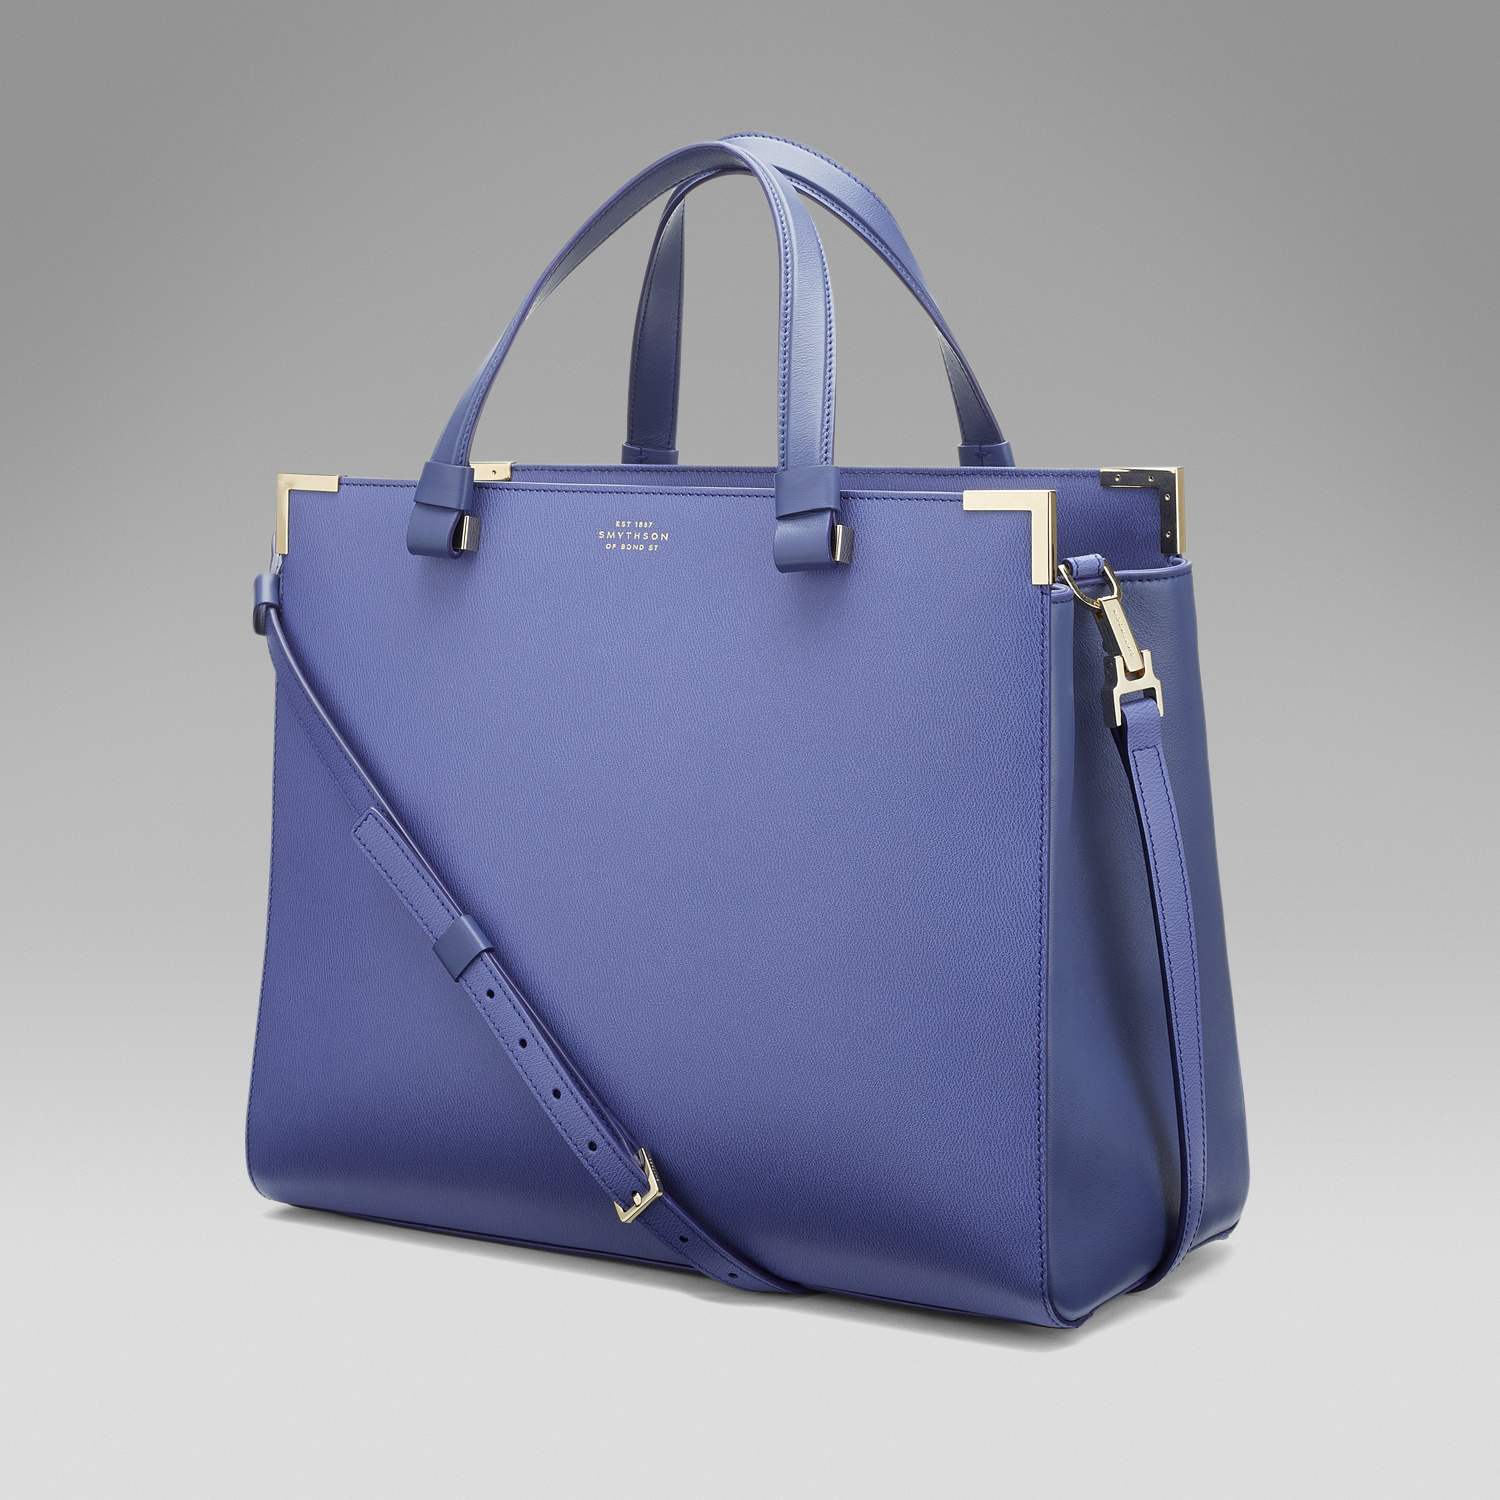 Smythson Leather Corners Tote in Blue